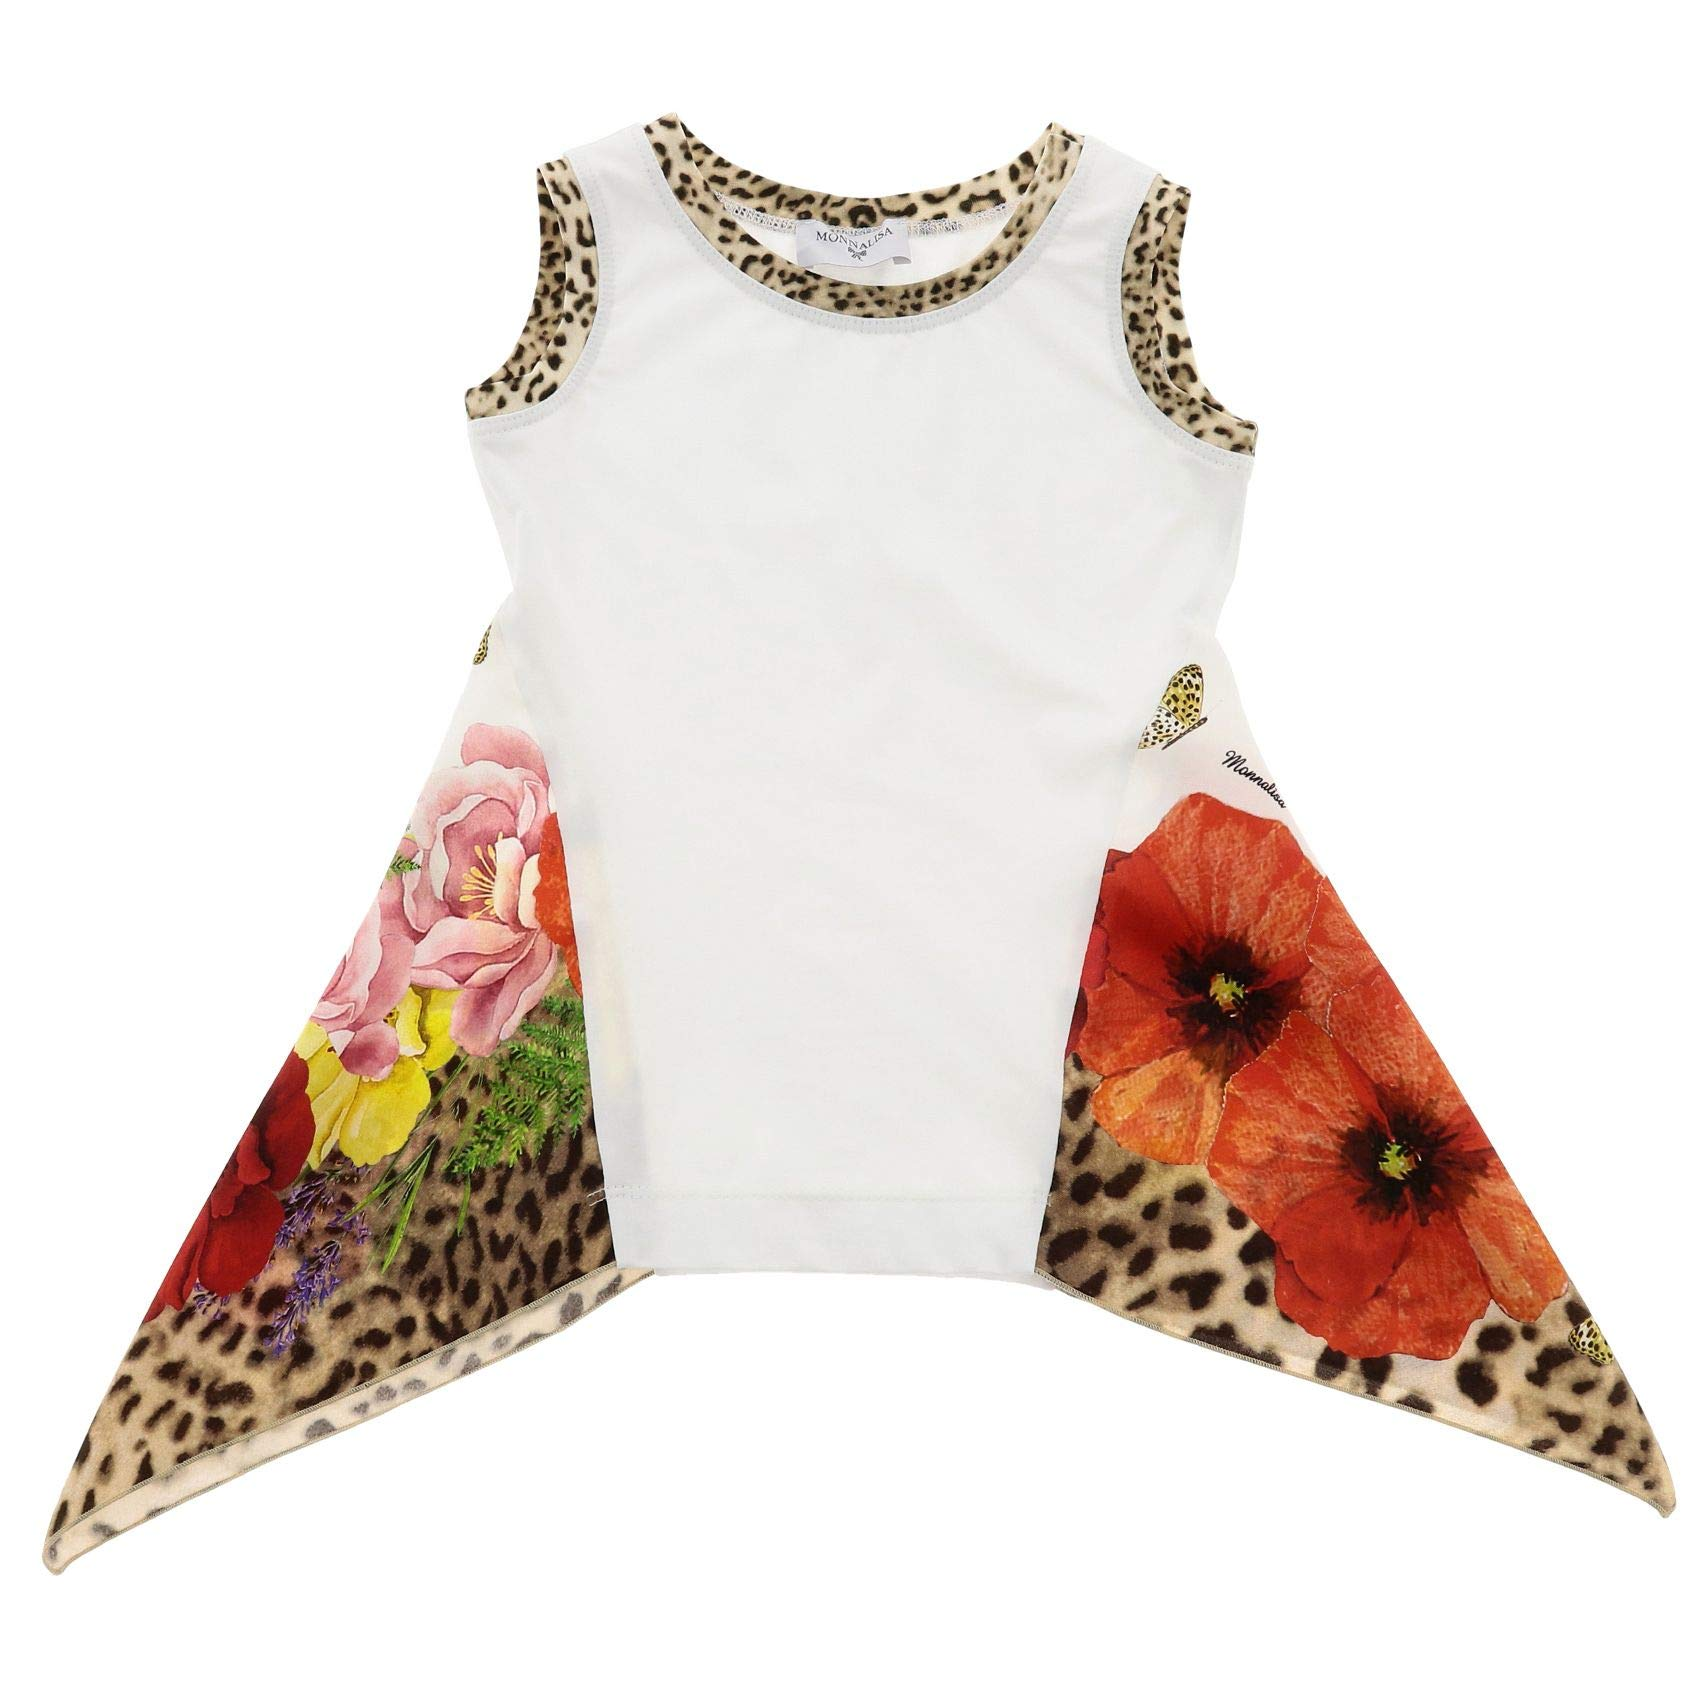 Monnalisa Girls 11363432019980 White Cotton Tank Top by Monnalisa (Image #1)